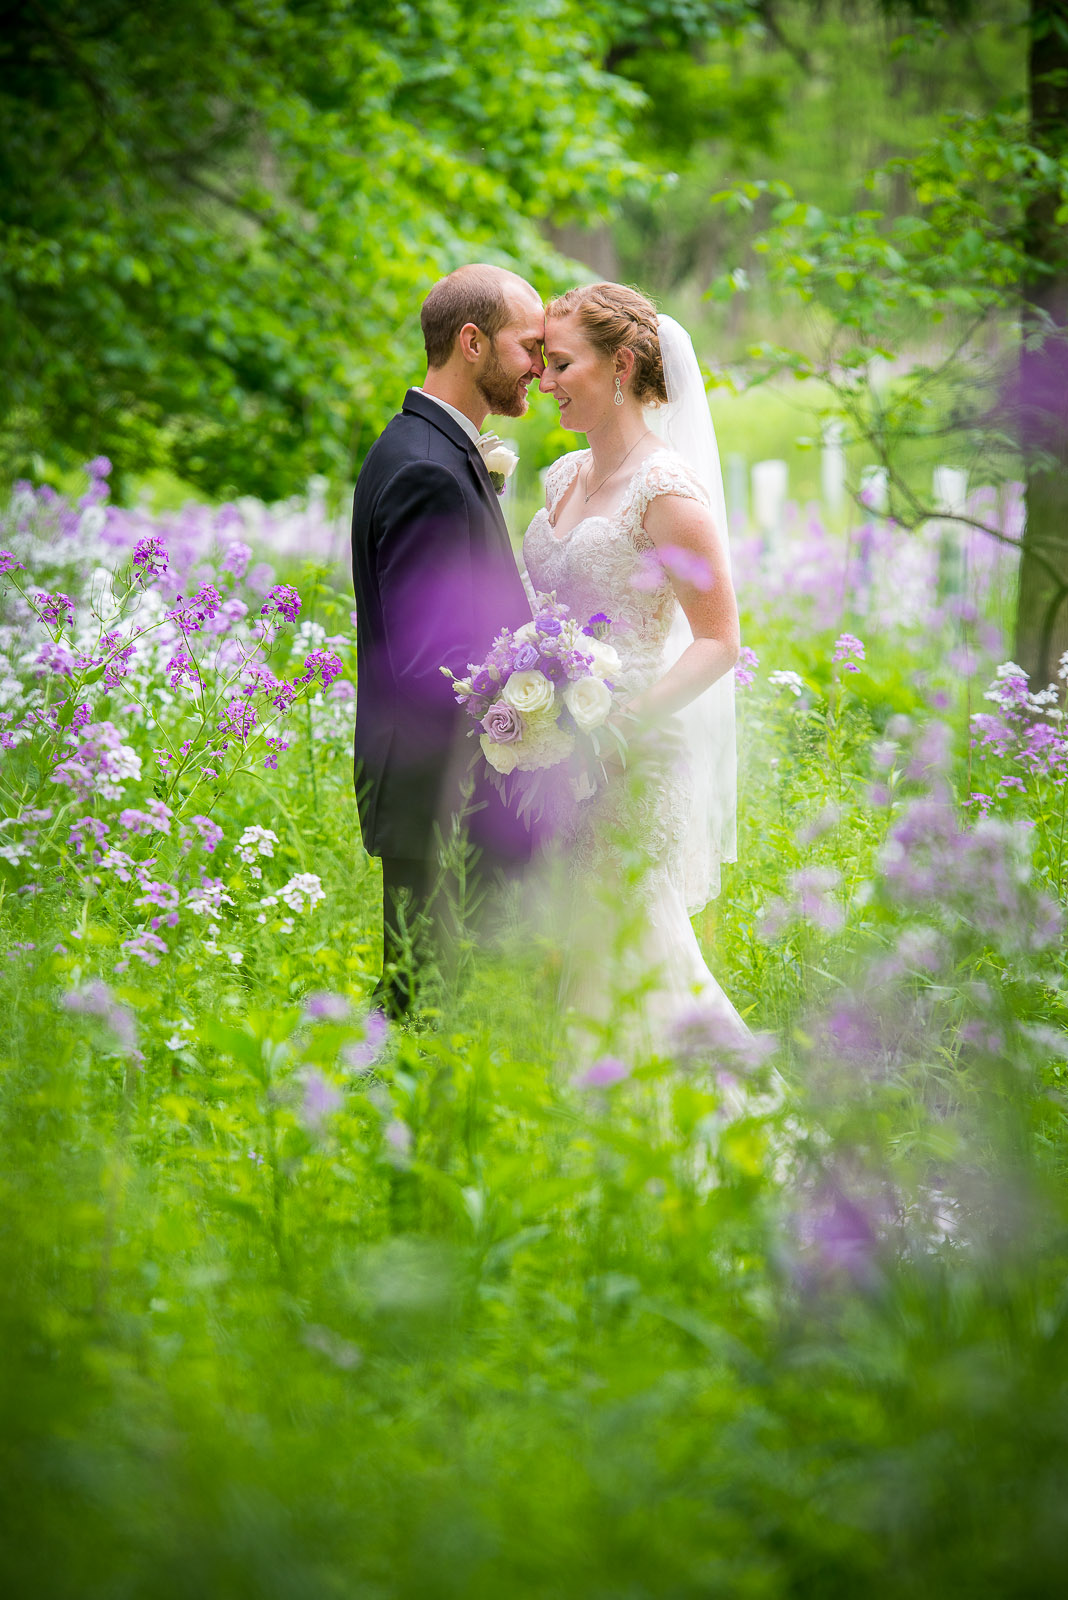 eric_and_christy_photographers_blog_wedding_katieandy-23